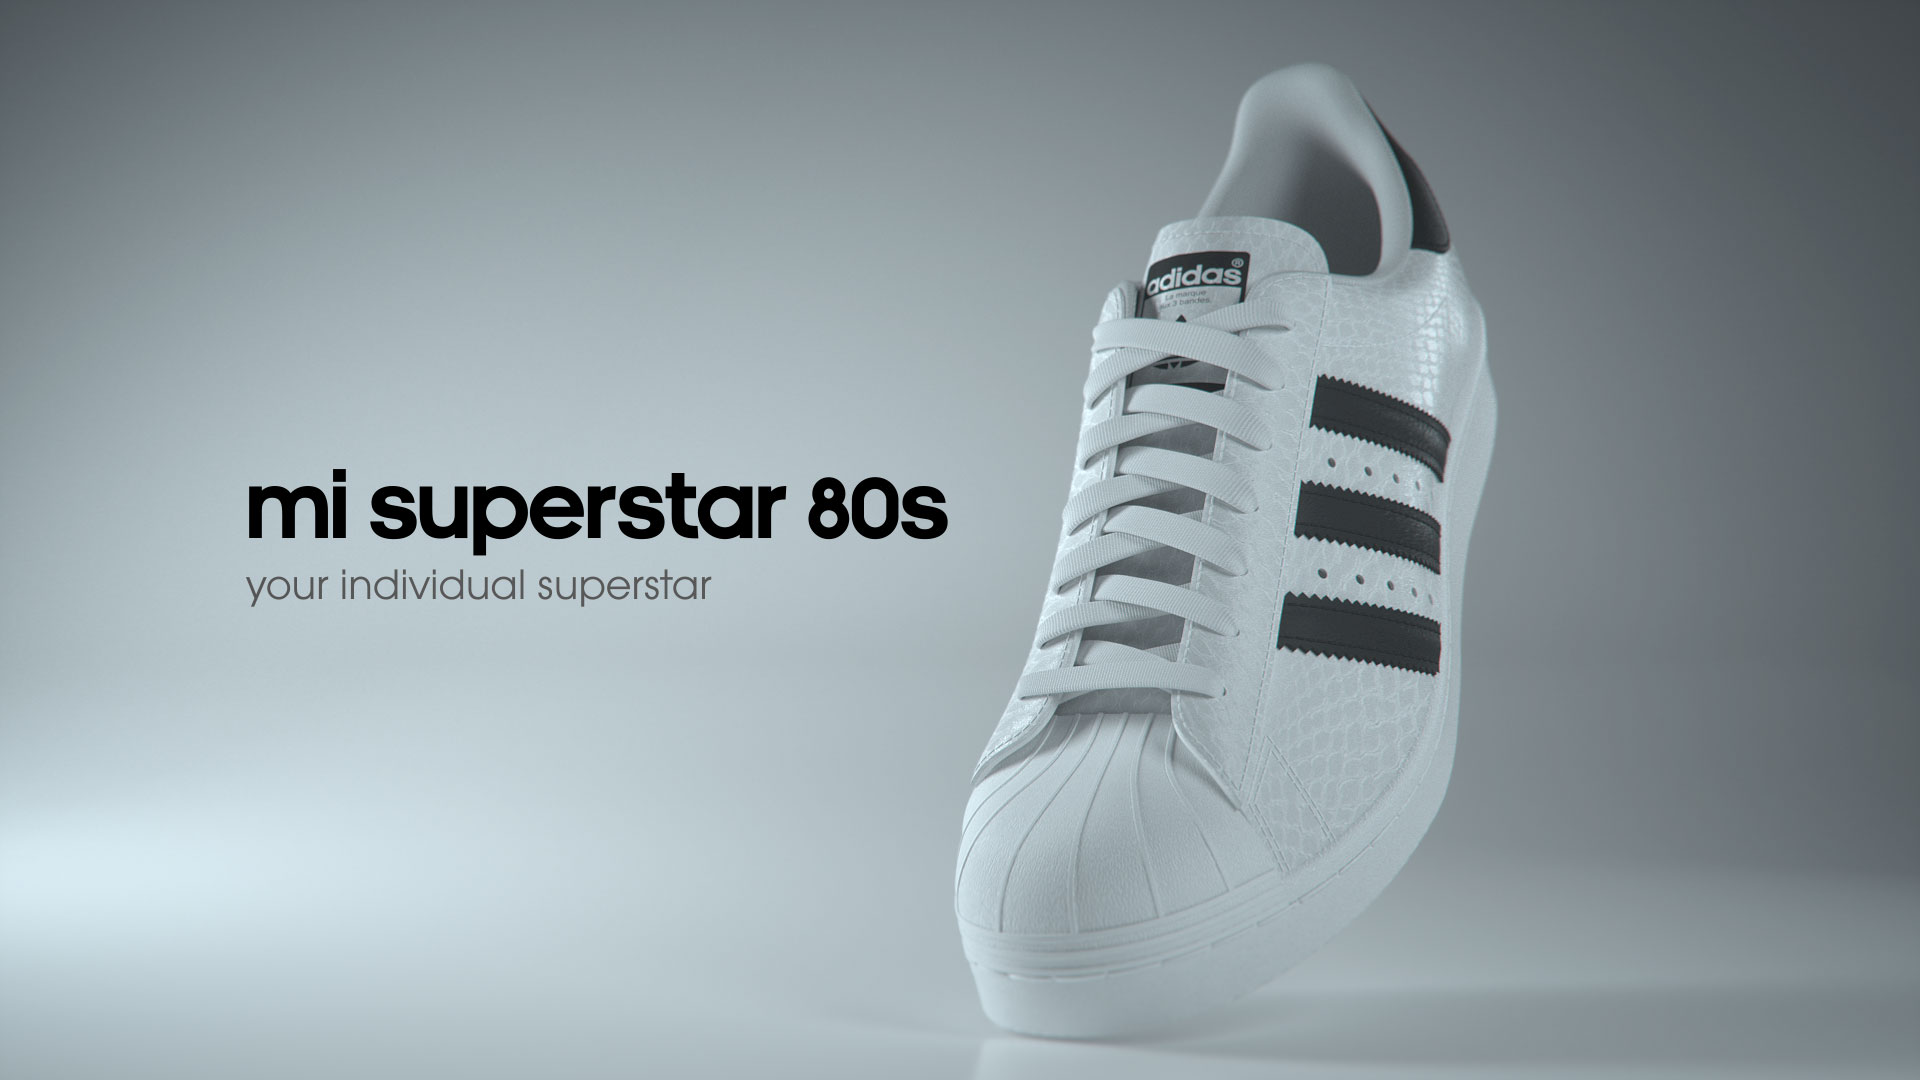 Customizing Superstar